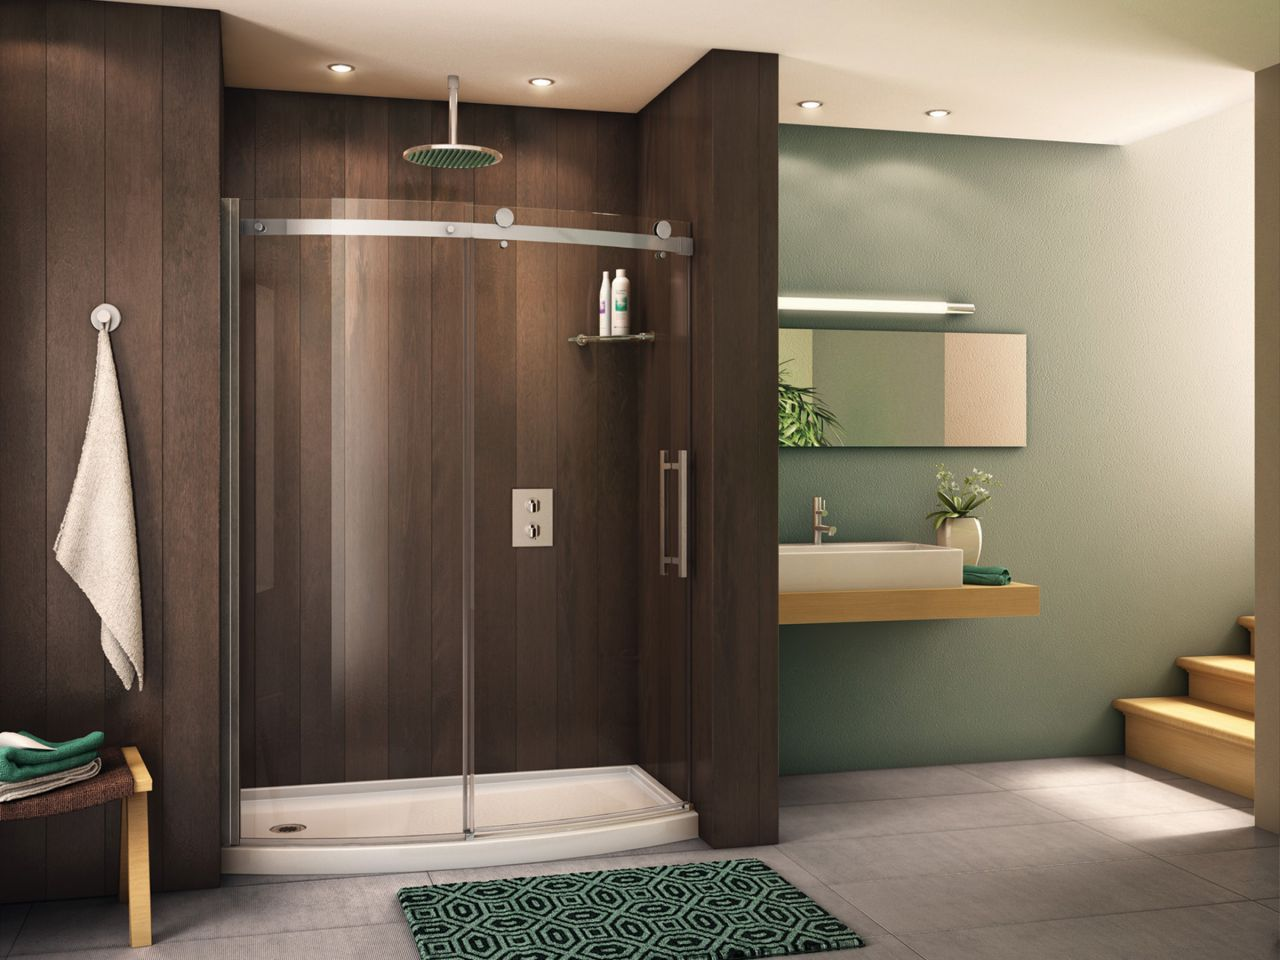 Curved shower door system   Fleurco base. 7 Reasons to Choose a Shower Door over a Shower Curtain